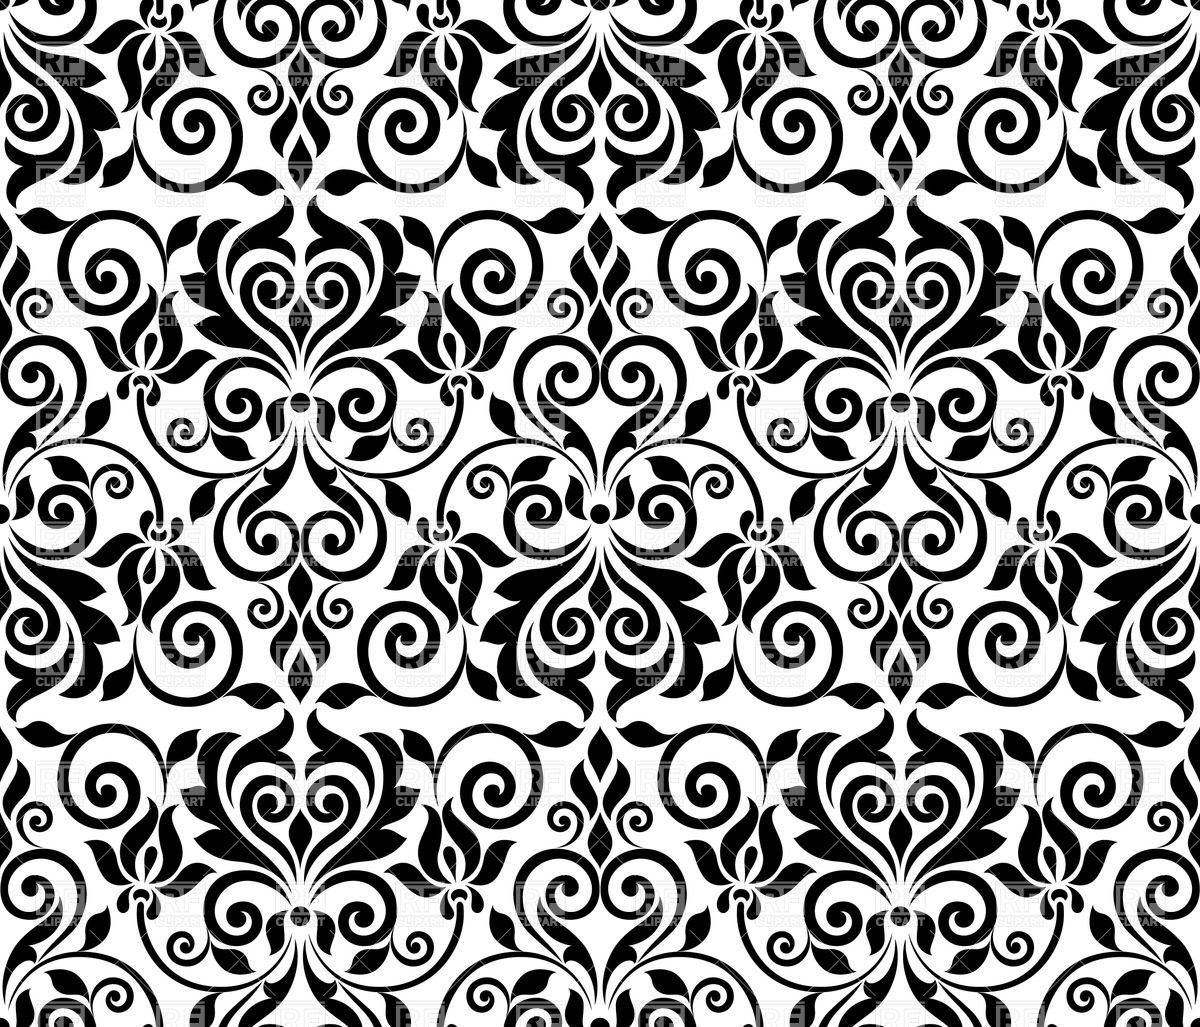 1200x1027 Black Floral Graphic Seamless Ornament Vector Image Vector